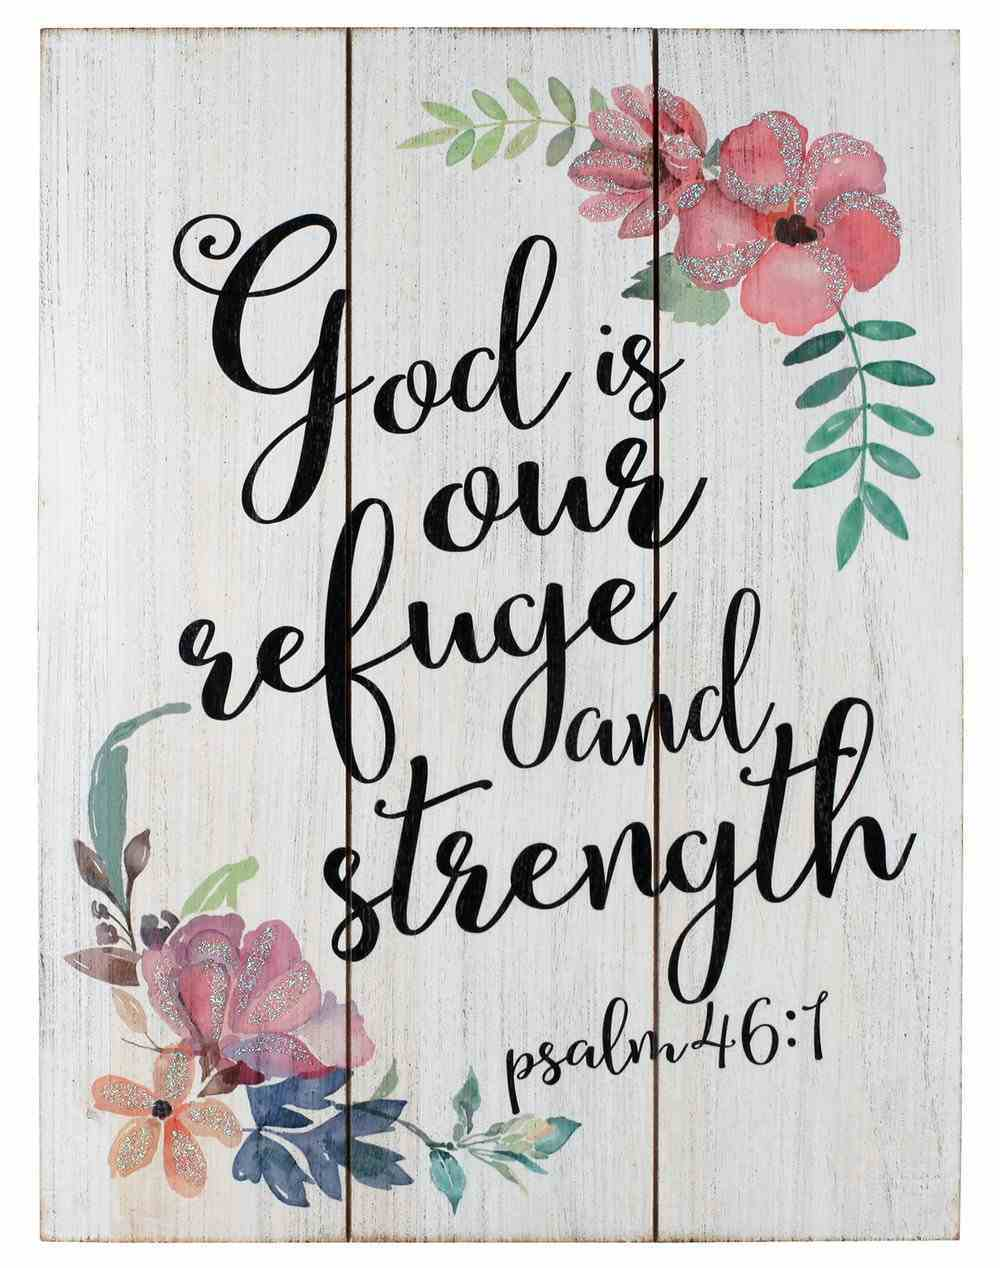 Mdf Wall Art: God is Our Refuge and Strength, Psalm 46:1 Plaque